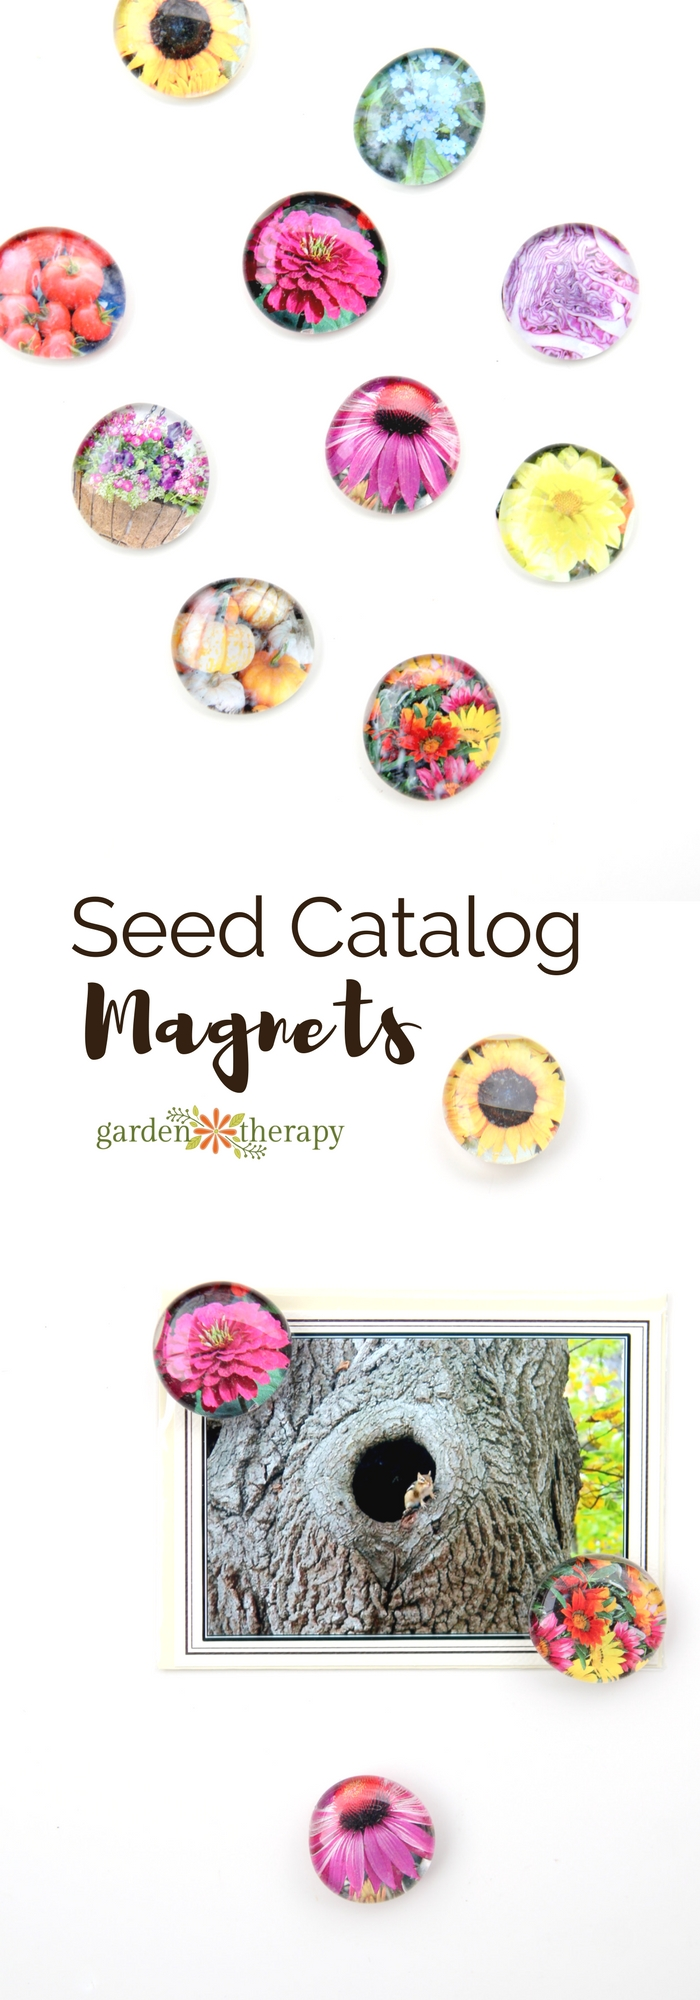 How to make magnets from the gorgeous photos in seed catalogs